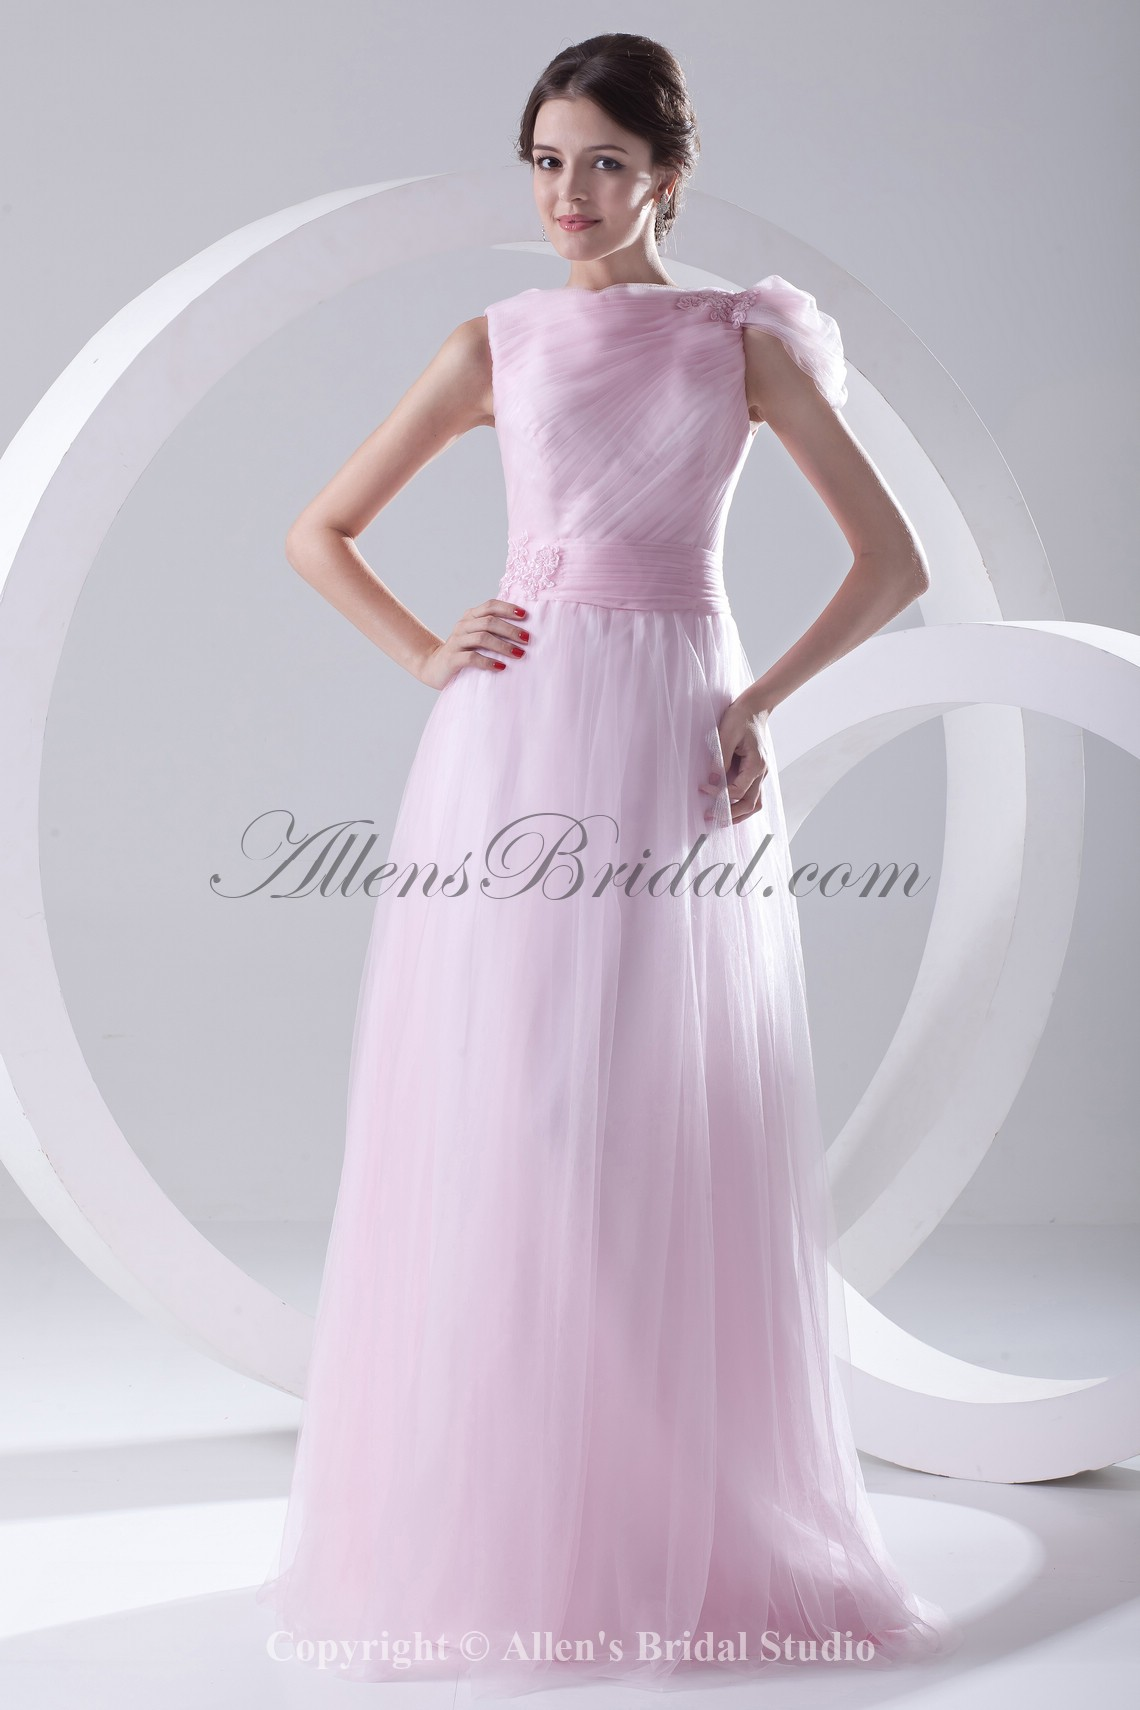 /254-2027/satin-and-net-bateau-neckline-a-line-floor-length-embroidered-prom-dress.jpg